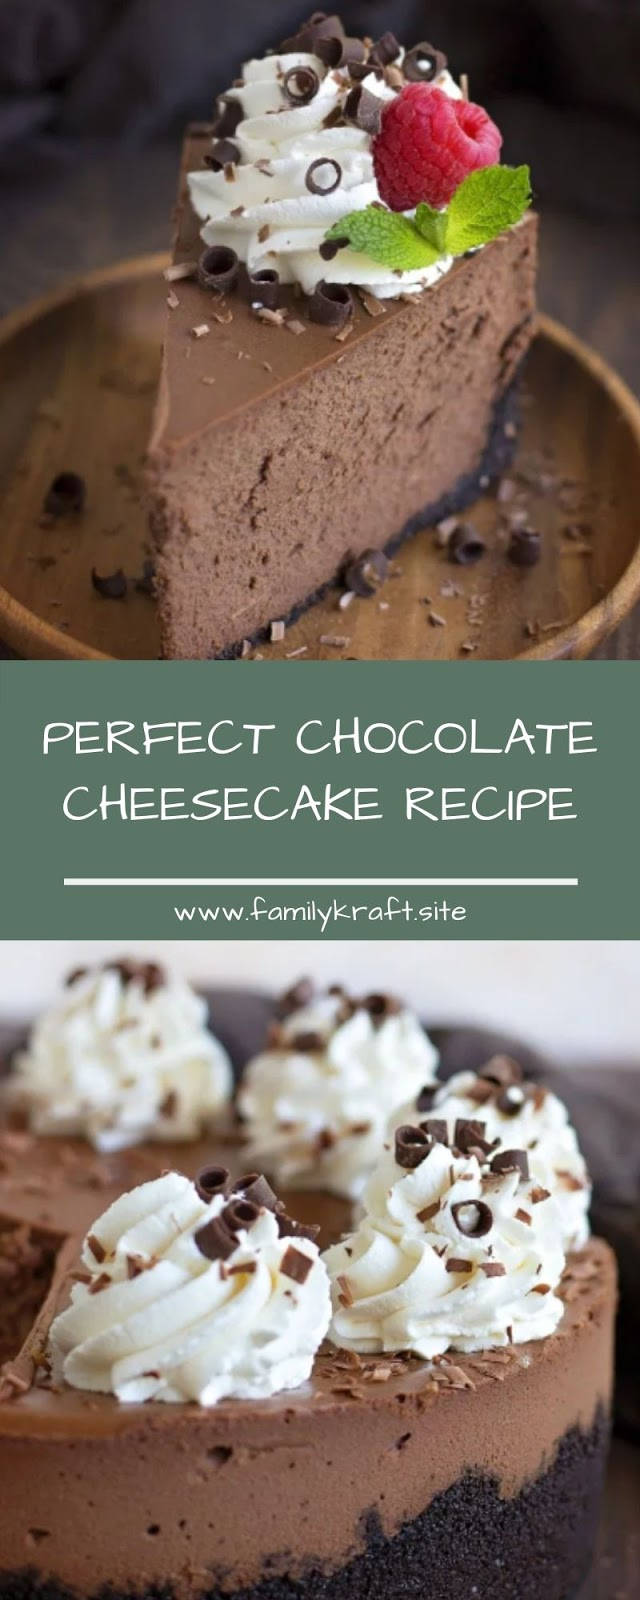 PERFECT CHOCOLATE CHEESECAKE RECIPE